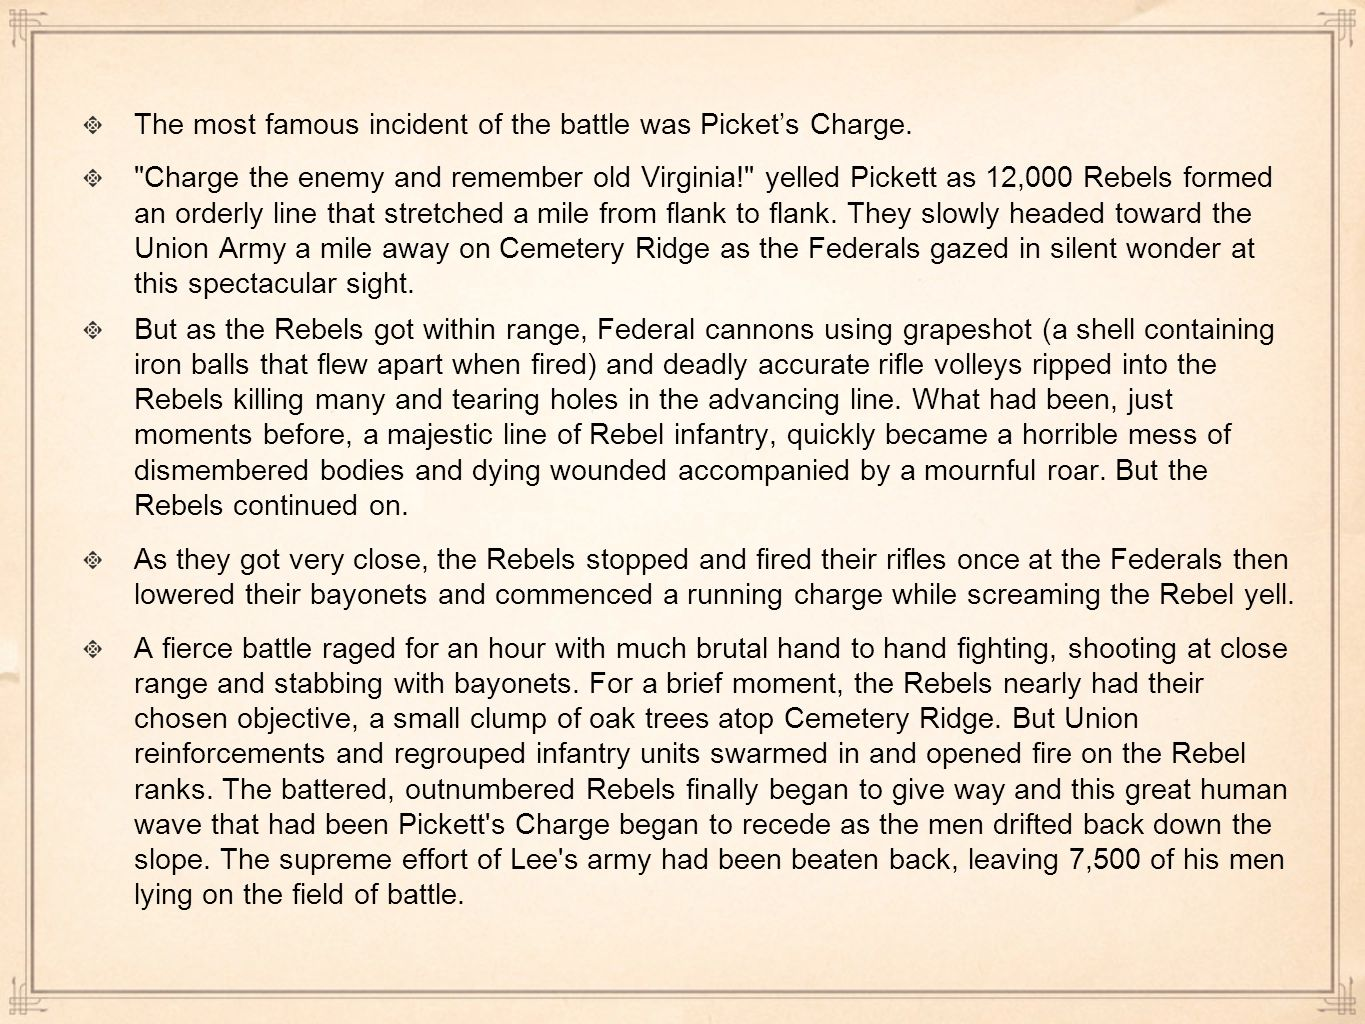 The most famous incident of the battle was Picket's Charge.